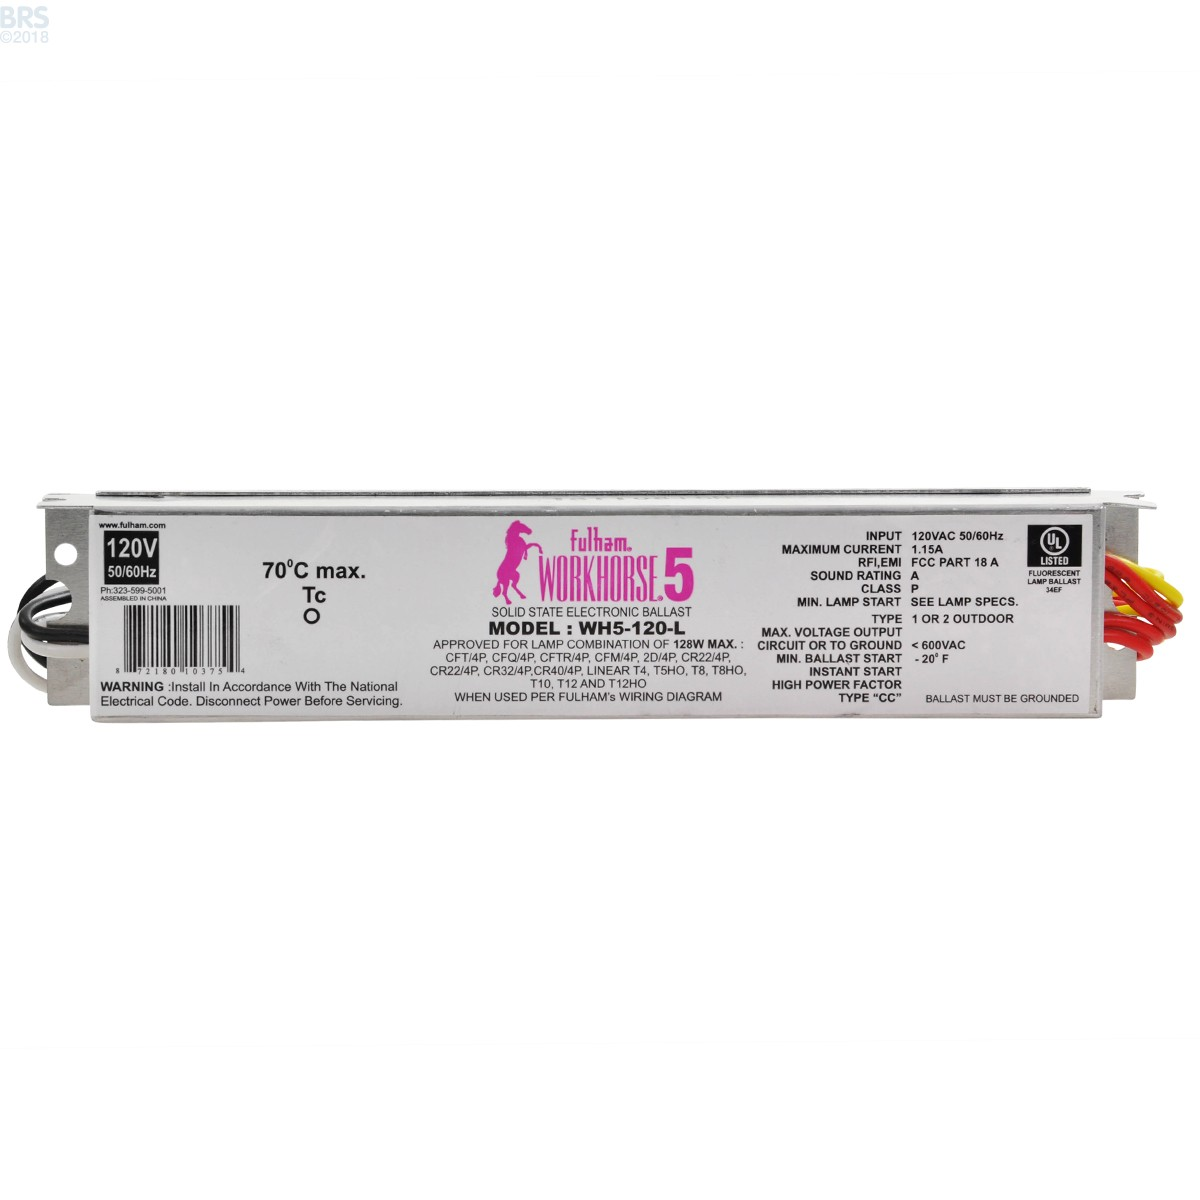 Fulham Workhorse 5 T5 Ho Fluorescent Ballasts Bulk Reef Supply Ballast 39w 2 Wiring Diagram Click On Image To Zoom